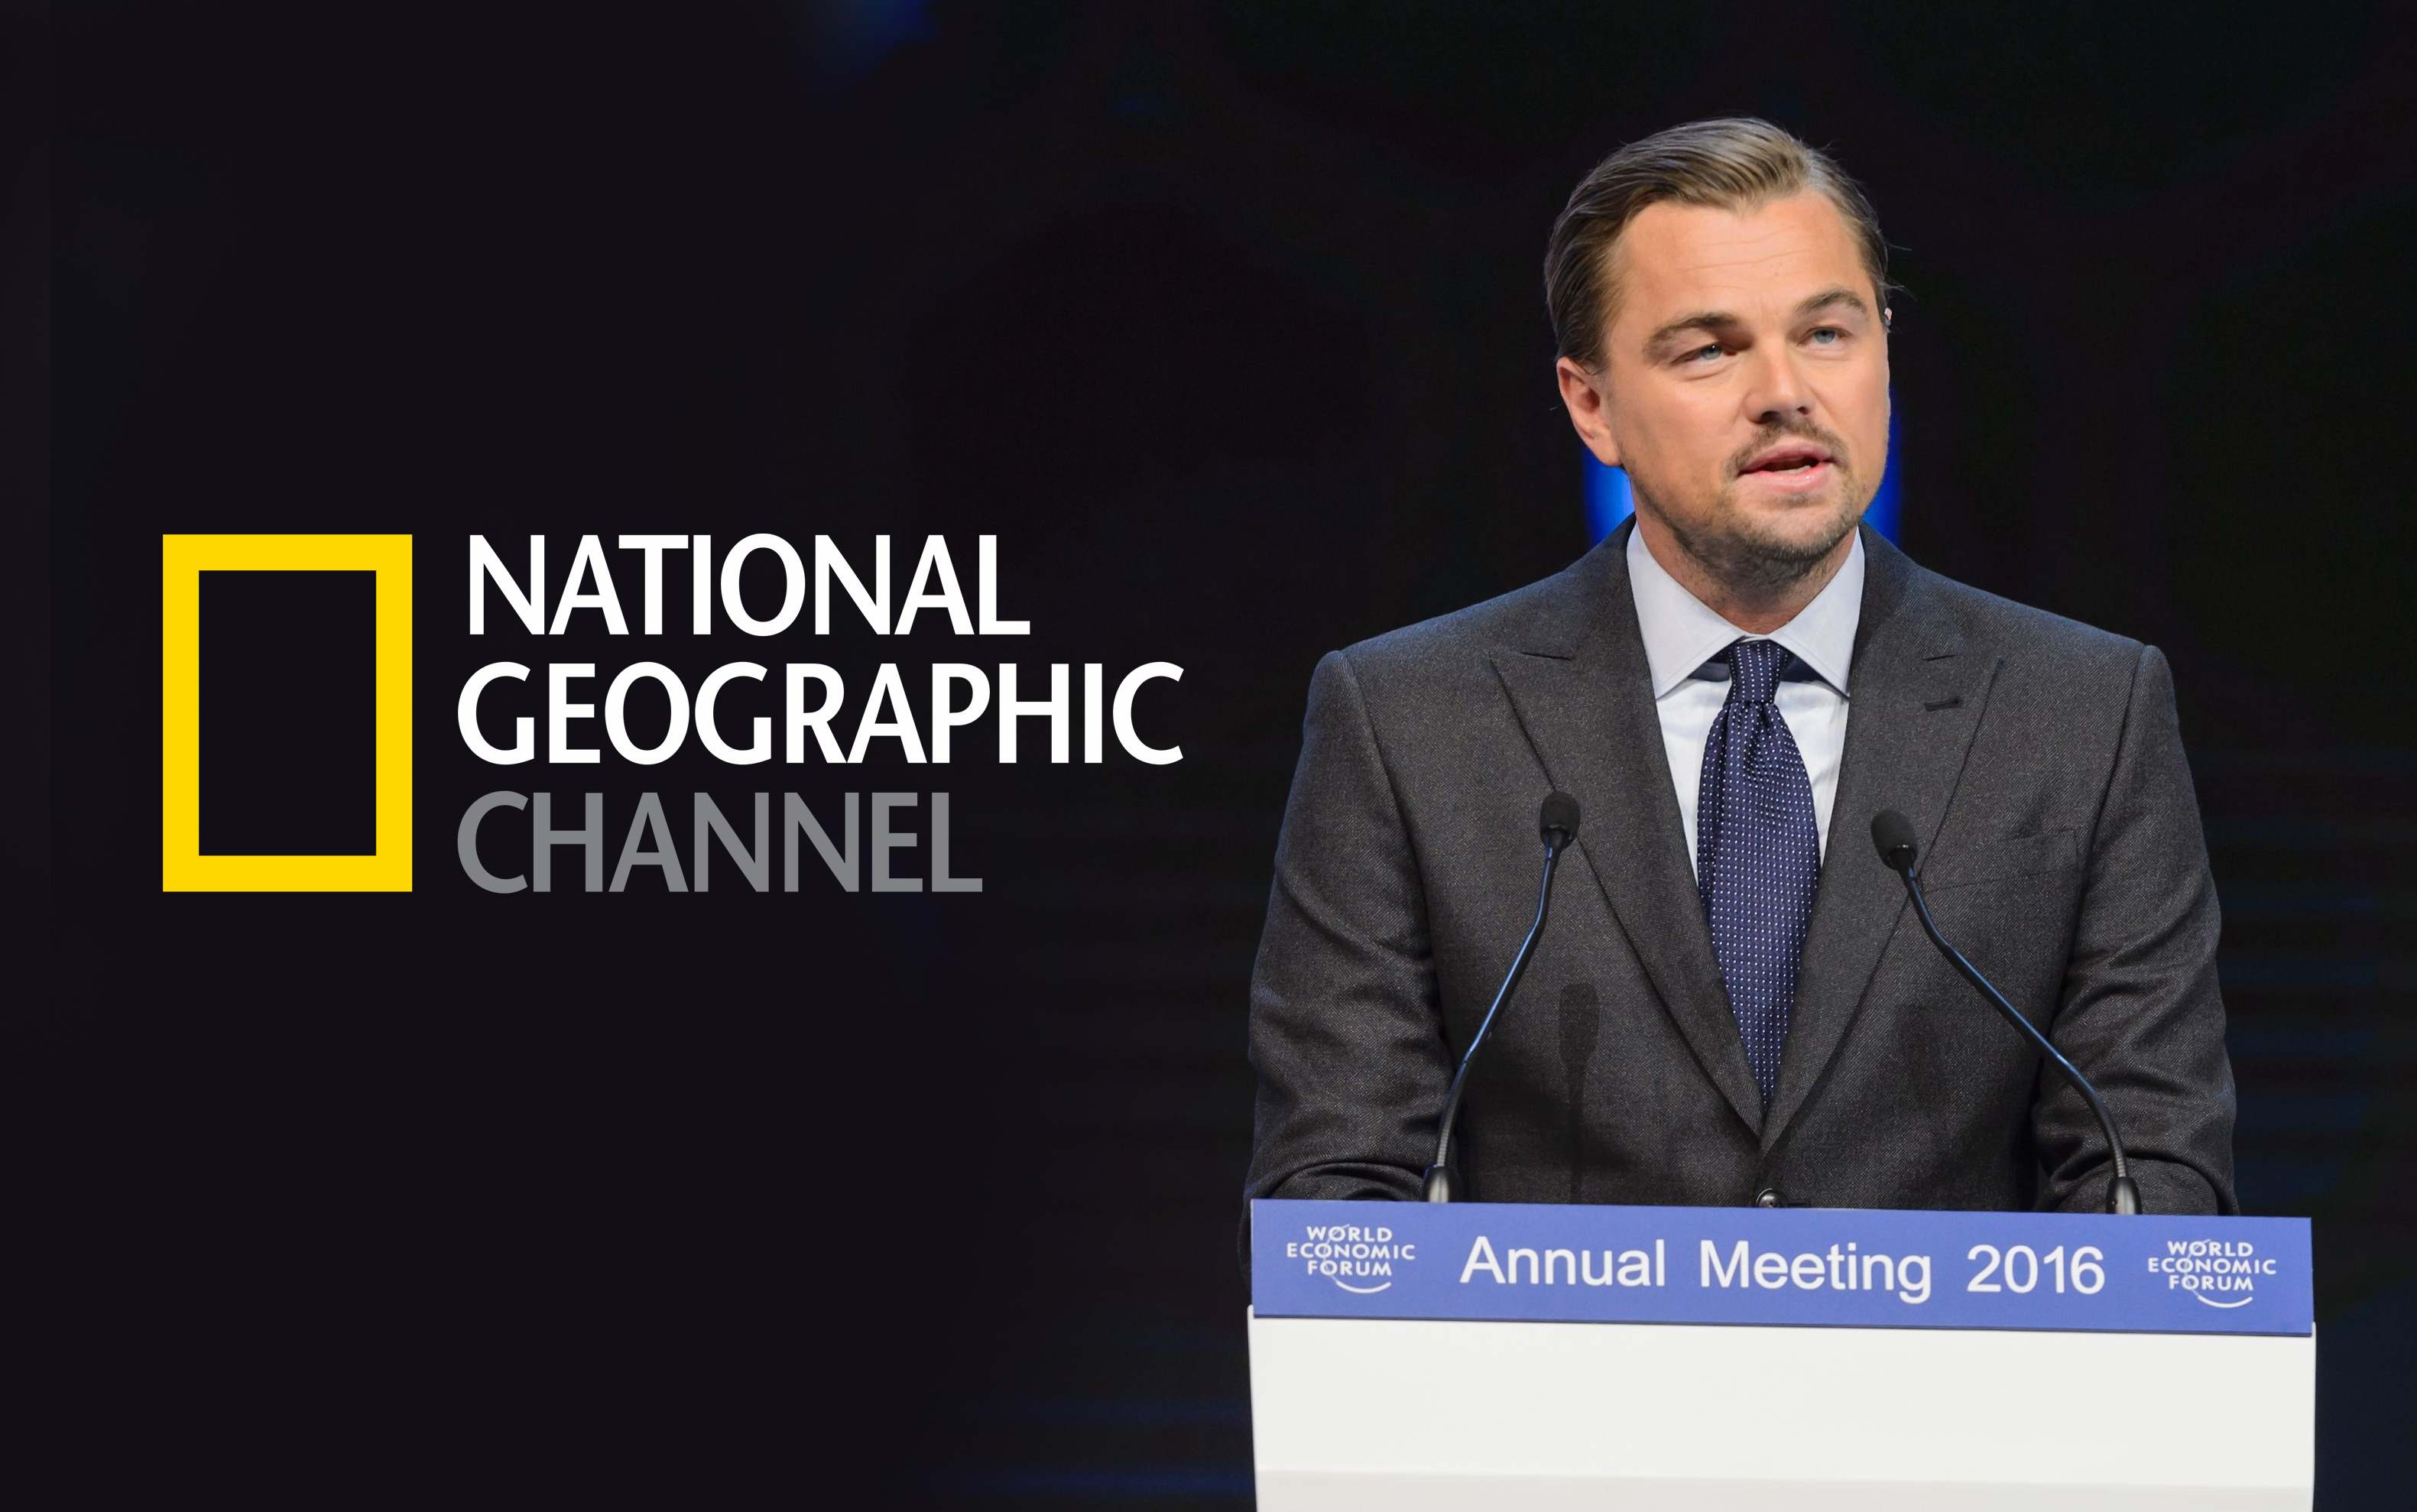 national-geographic-dicaprio